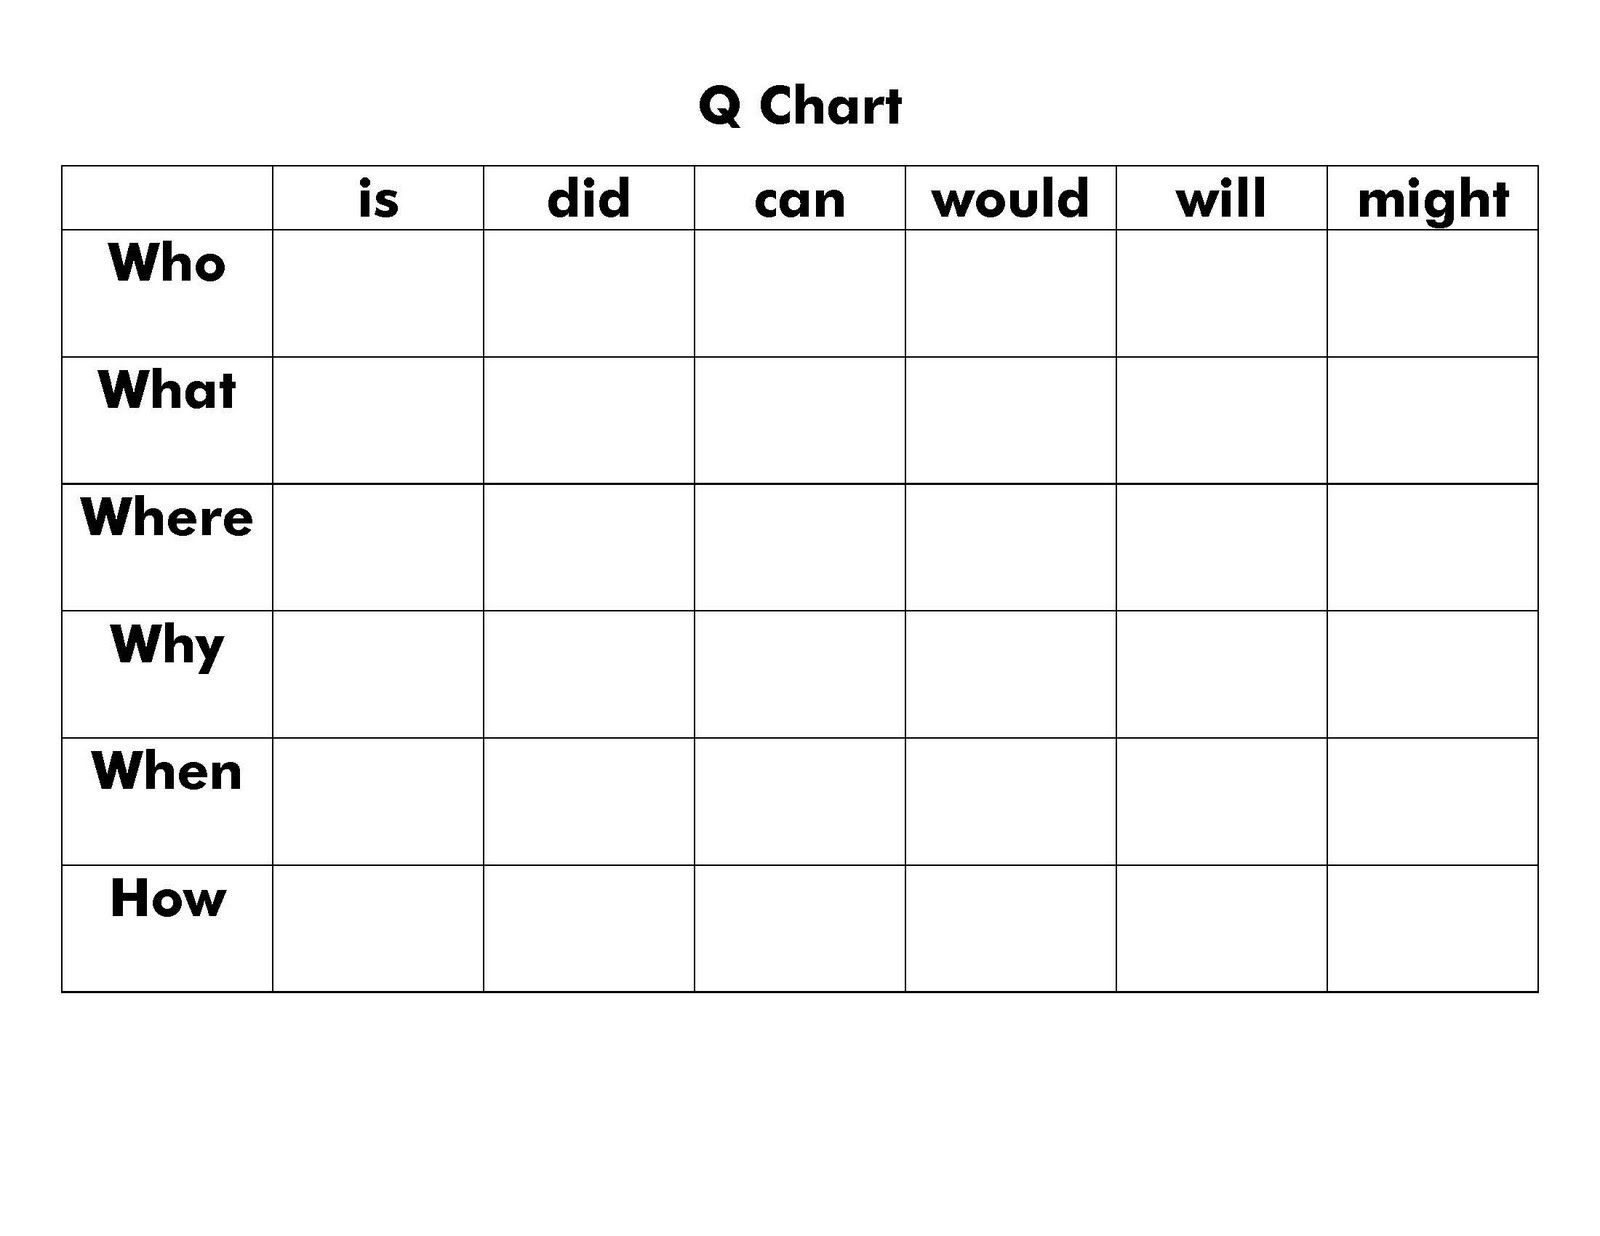 Q Chart Higher Order Thinking Questions